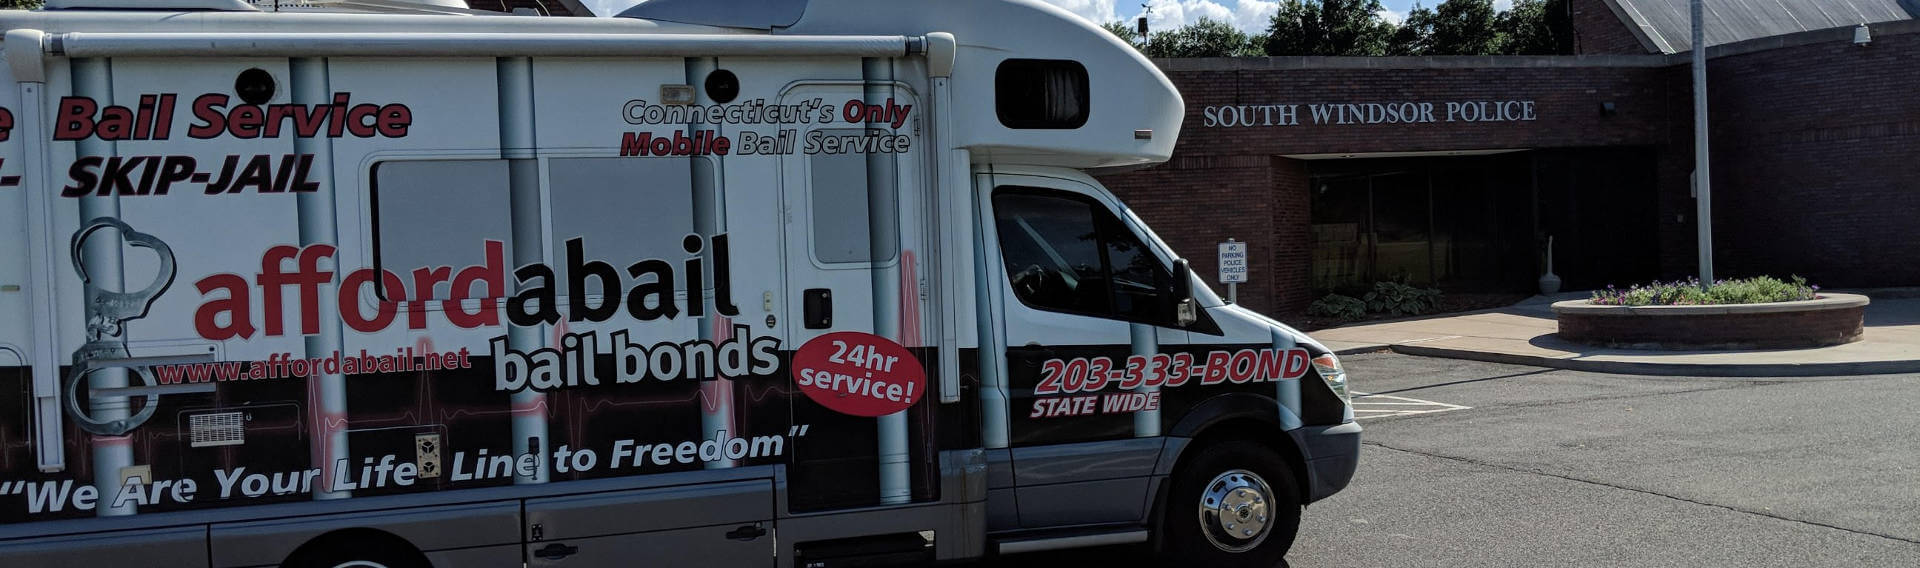 Mobile bail bonds service in South Windsor, CT